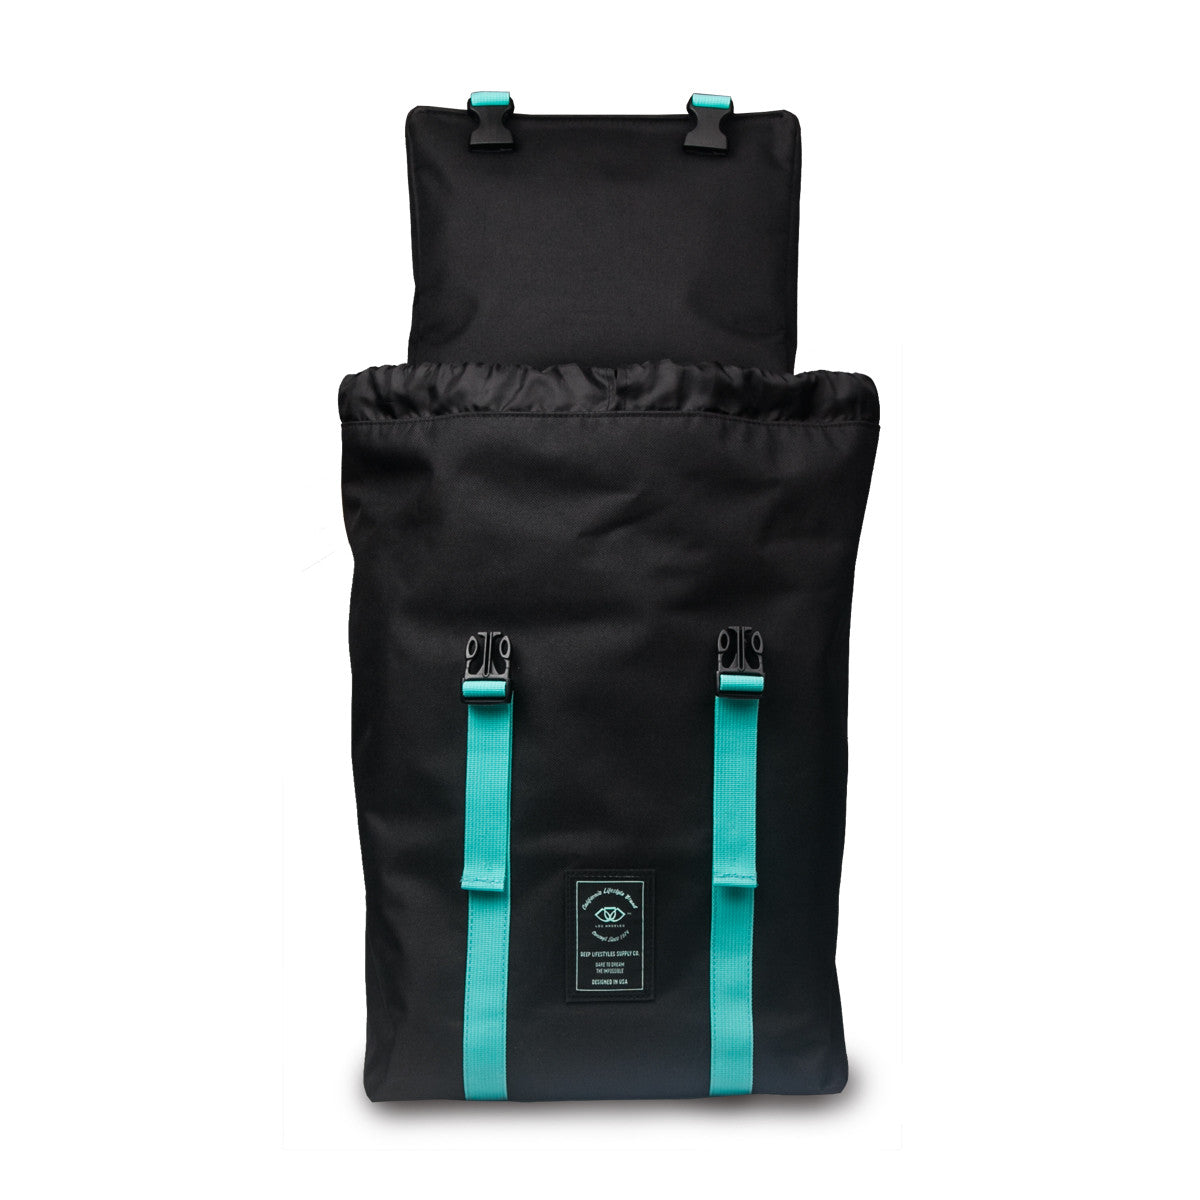 Black and DEEP Aqua Adventure Backpack (Front- Opened With Optional Drawstring)